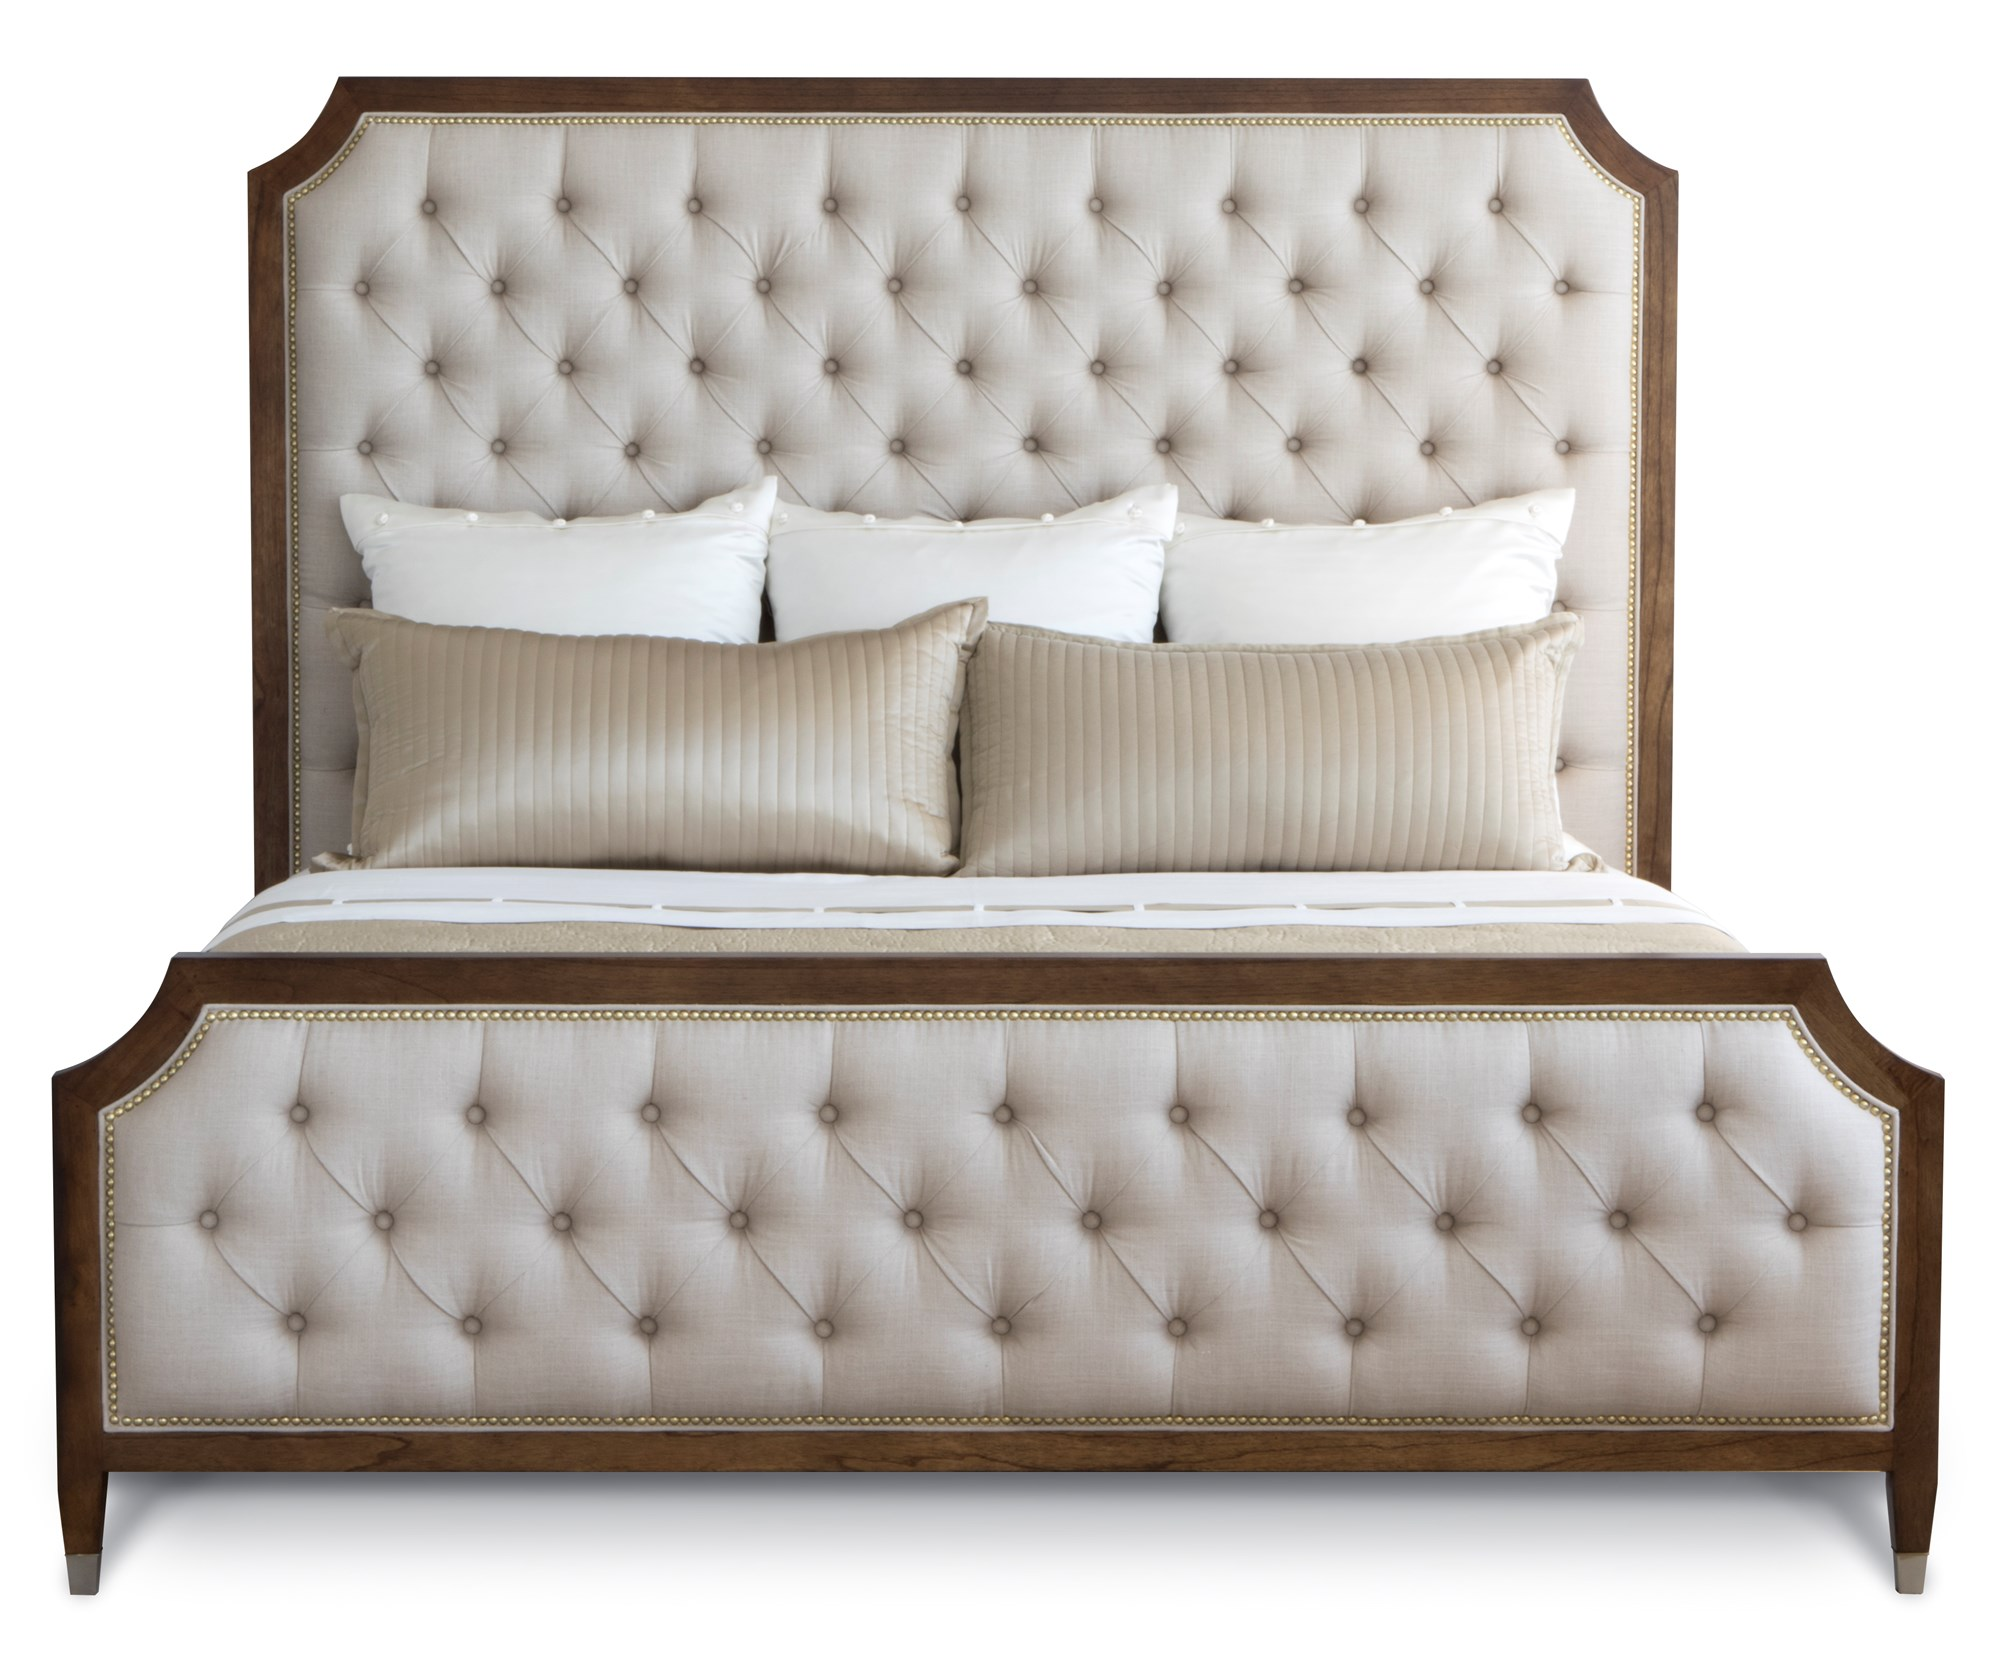 Temptress King Bed Beds Bedroom Robb Stucky